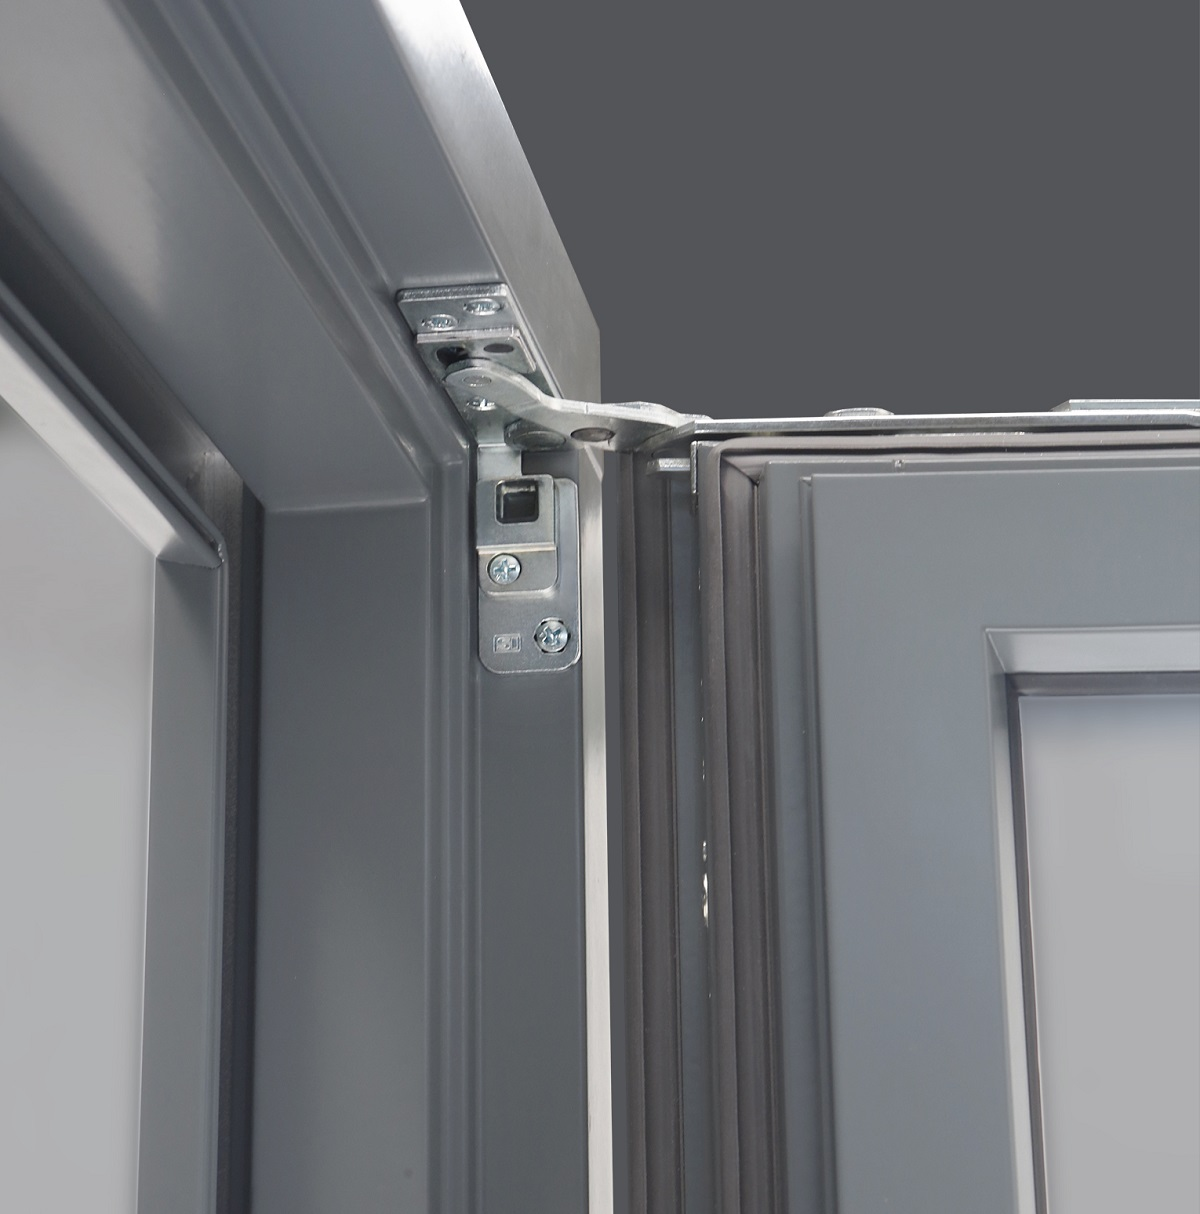 Security - The open in style gives great options for cleaning from within and secure ventilation in the tilt position. All our Tilt & Turn windows are fitted with high security multi-point locking systems to keep your home secure.